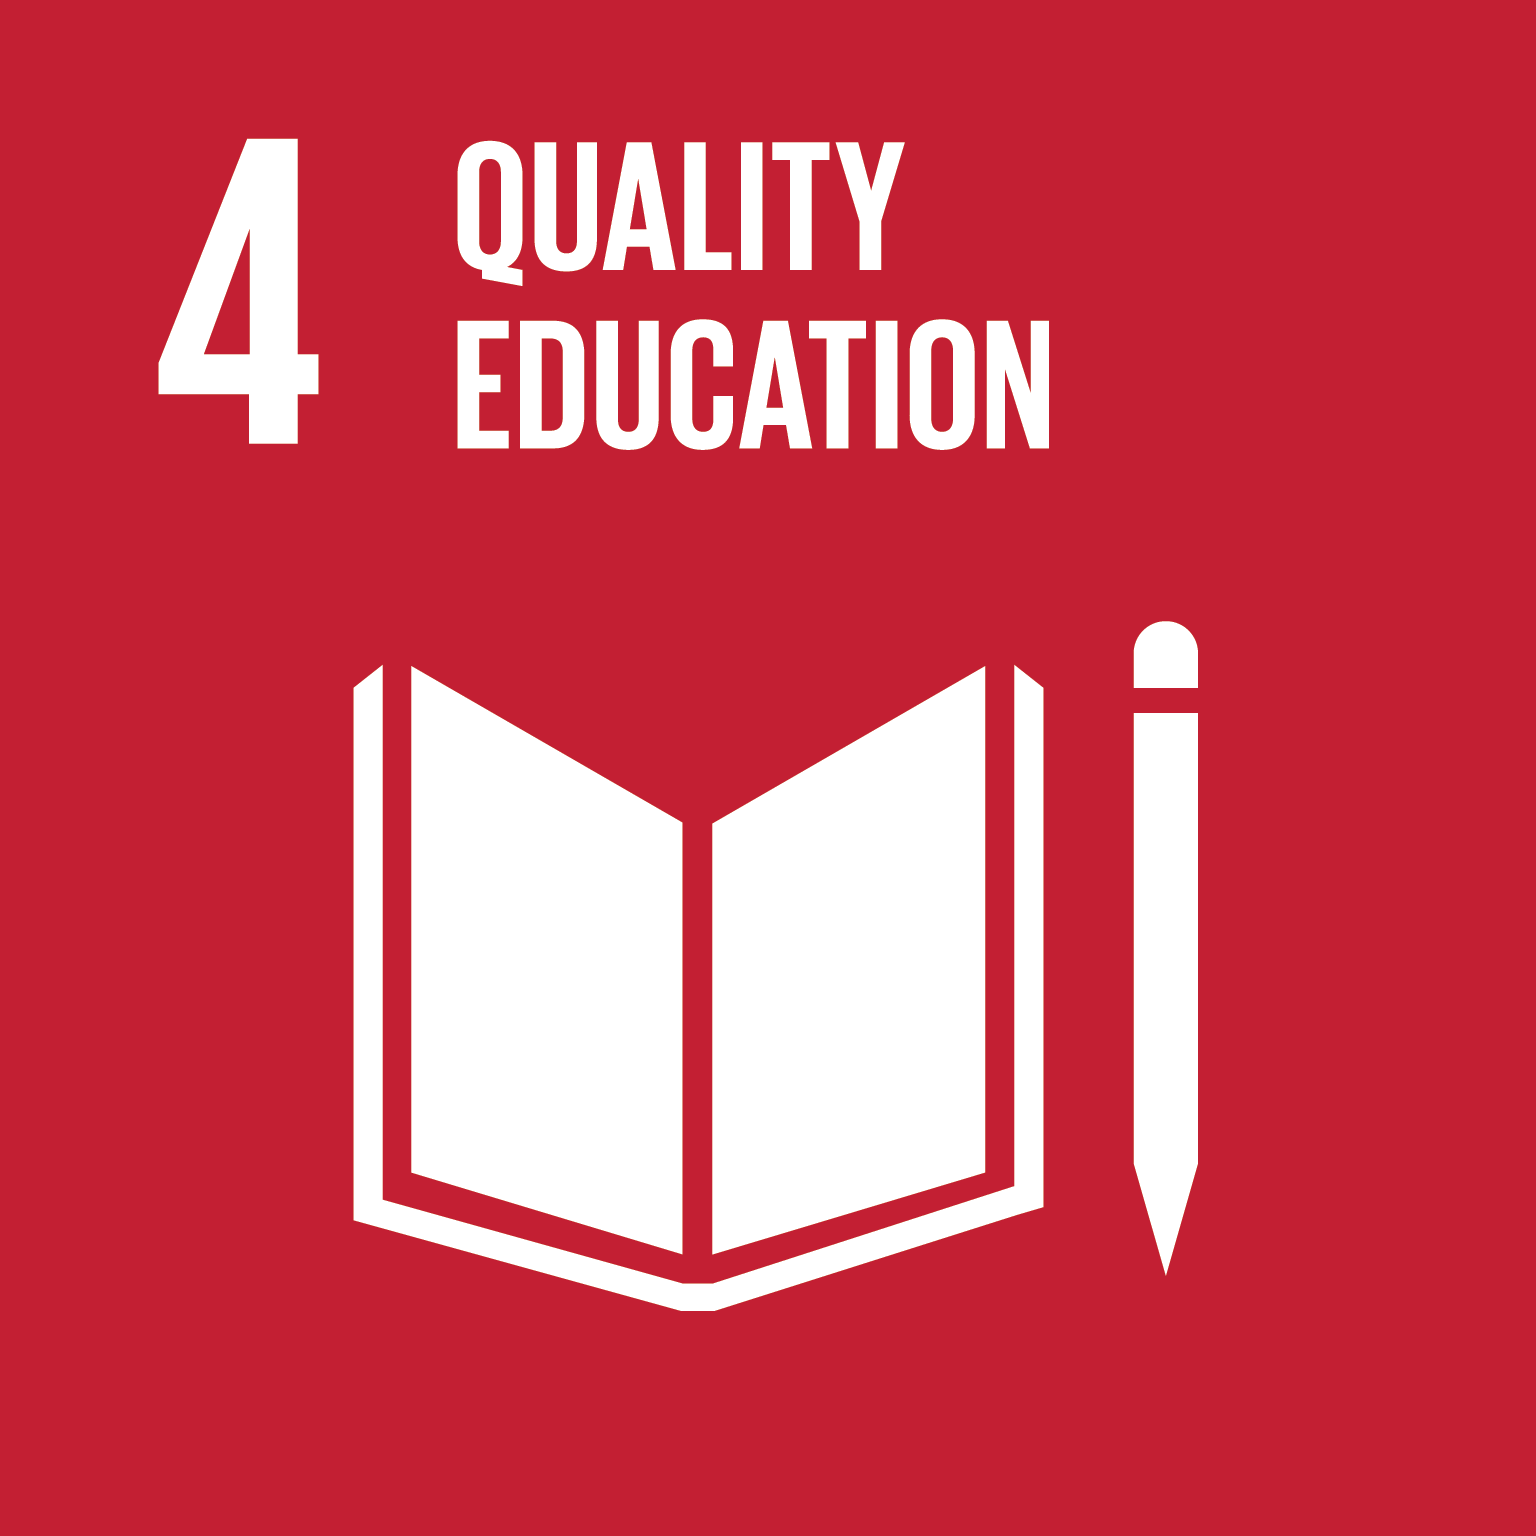 An image of UN Sustainable Development Goal 4